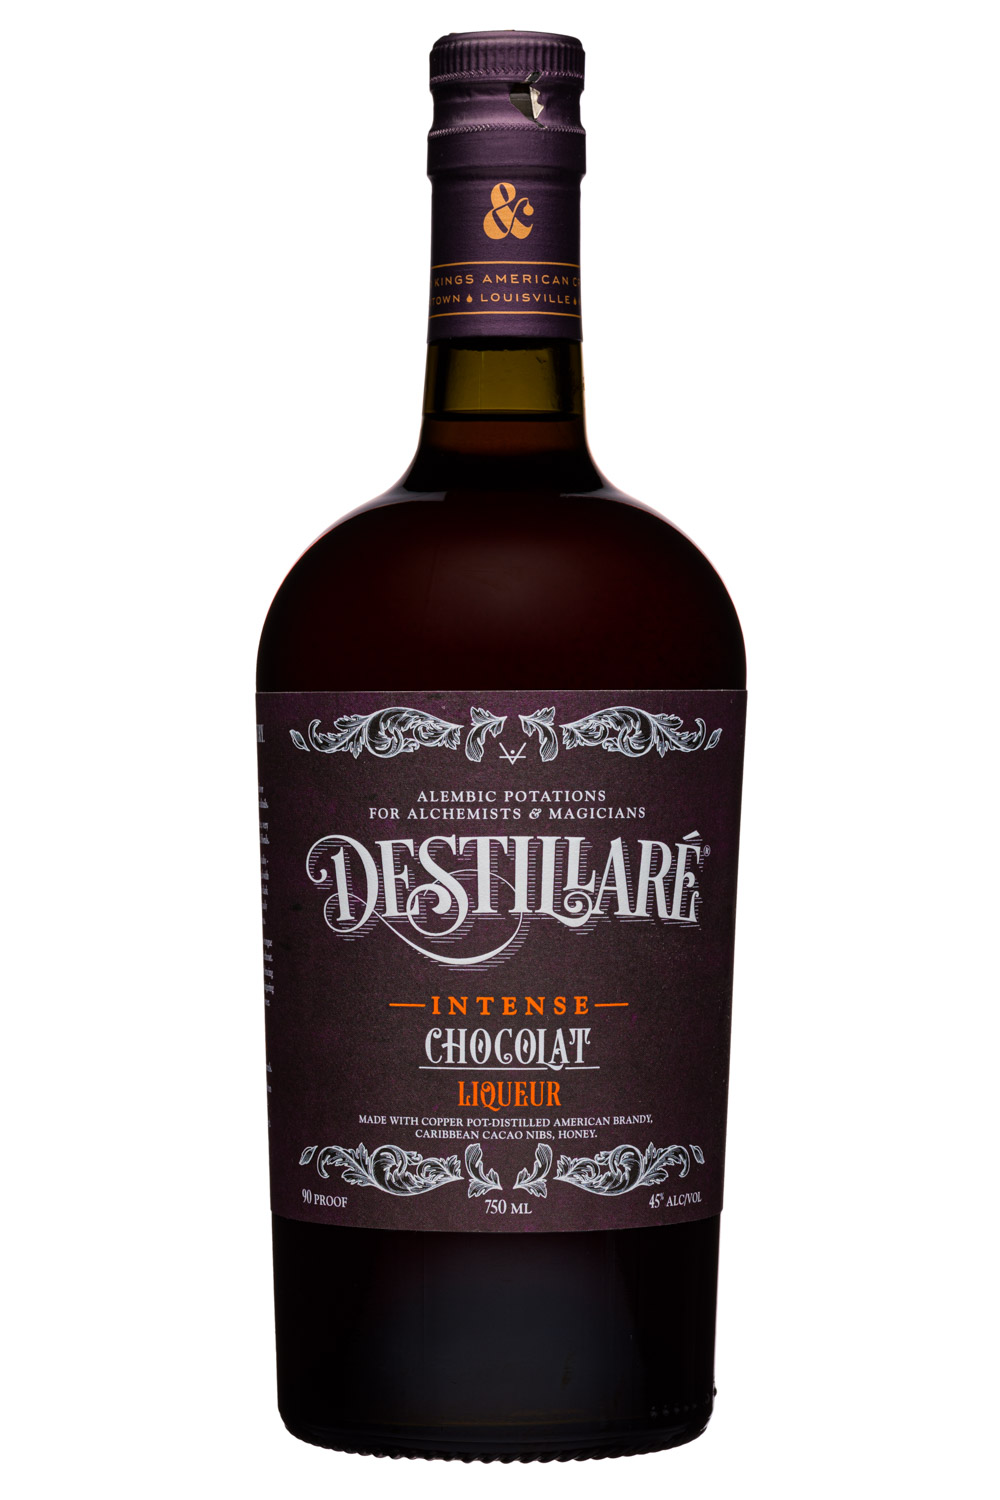 Intense Chocolate Liqueur